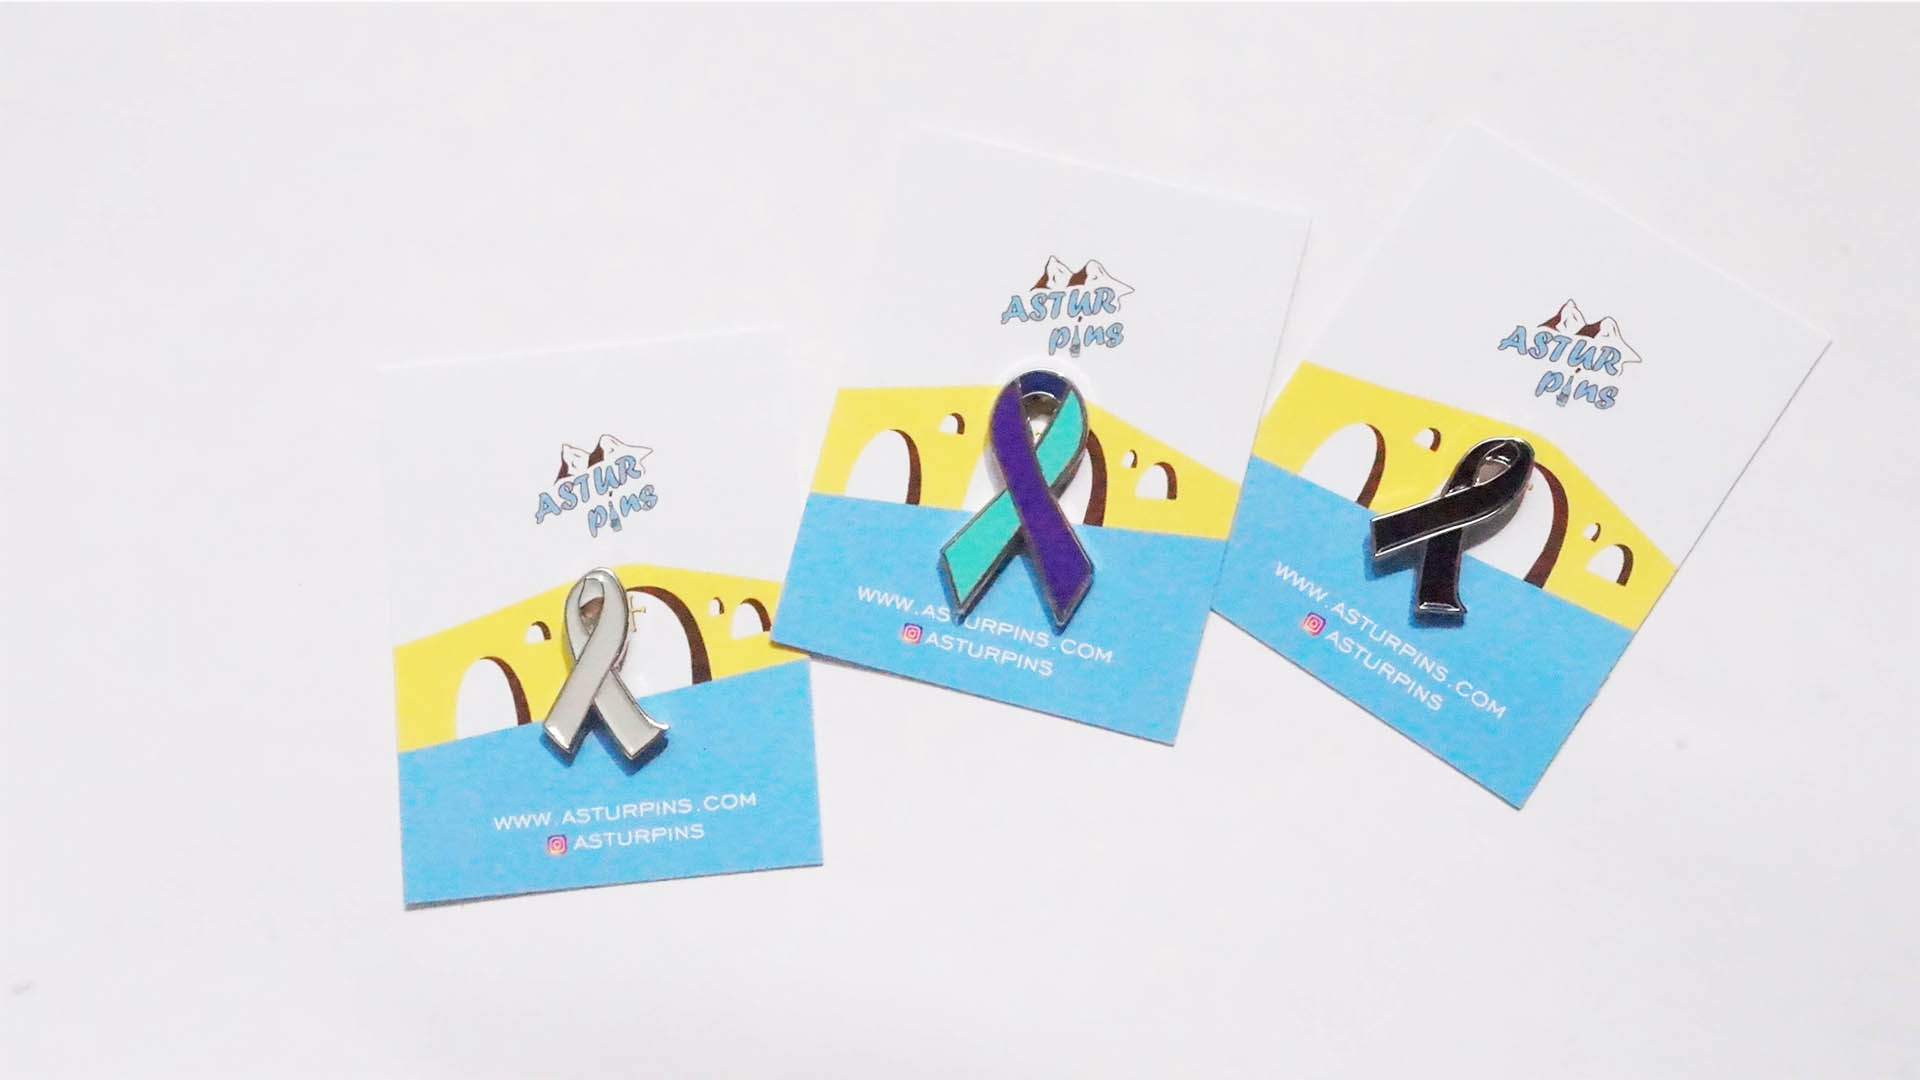 3 ribbon pins in astur pins cards